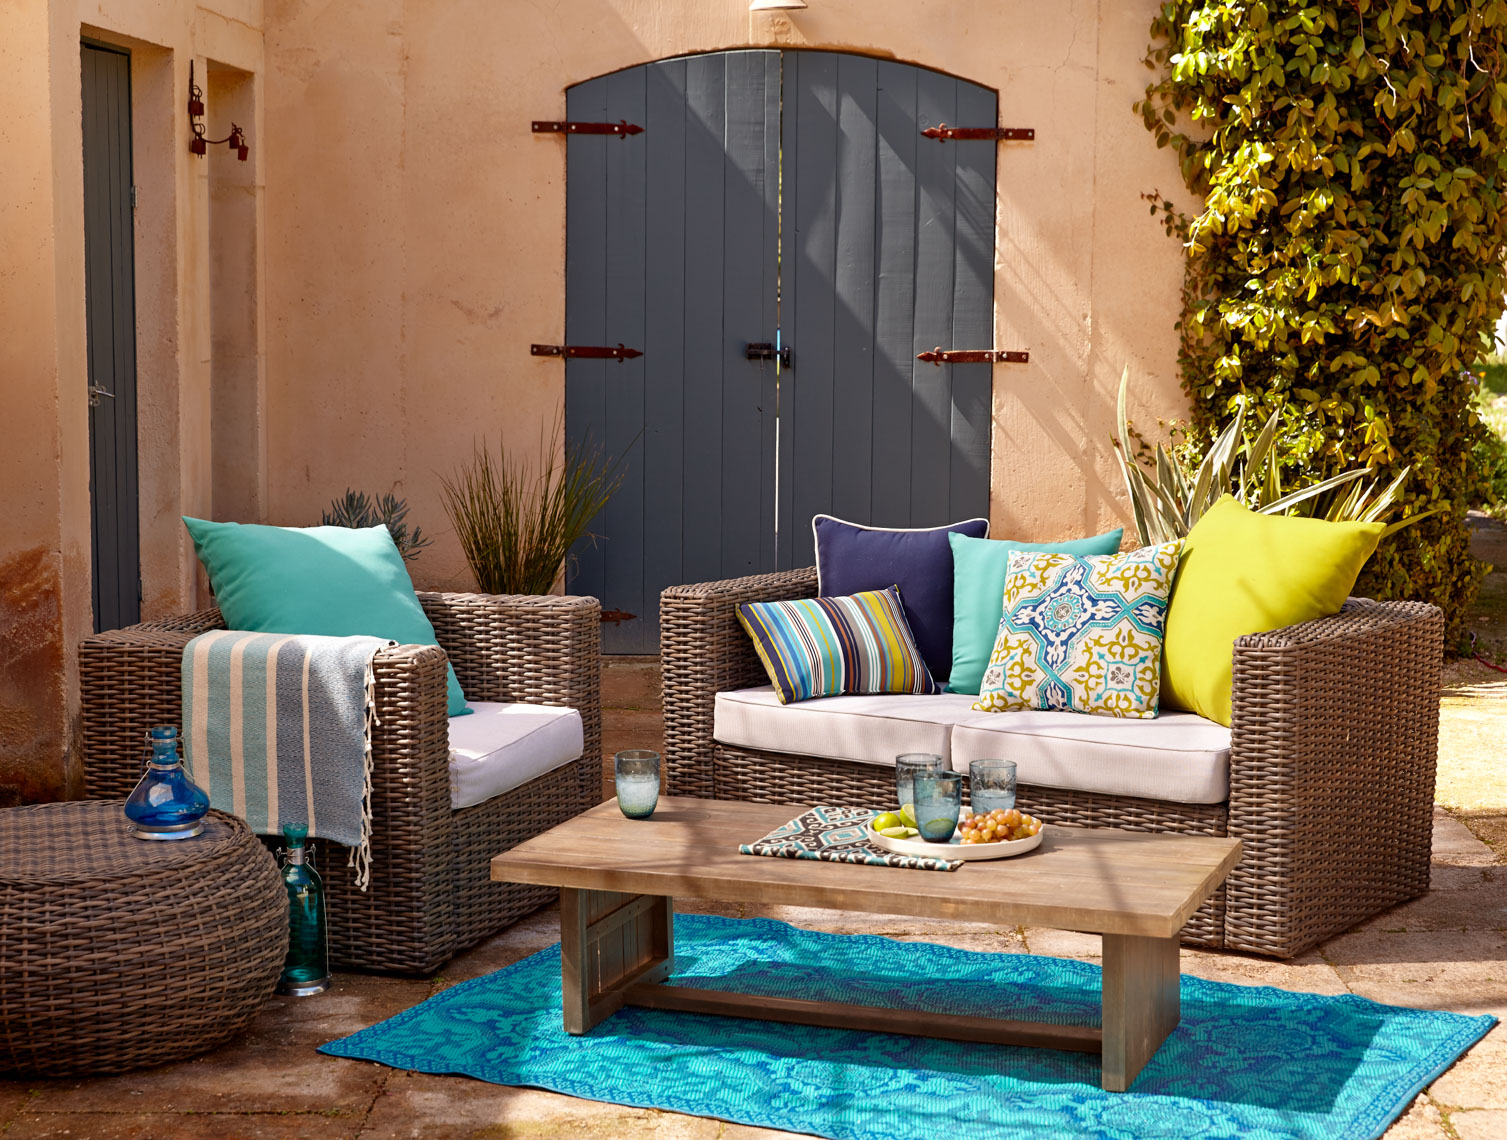 Brown Wicker outdoor furniture set with colorful cushions on blue rug in courtyard